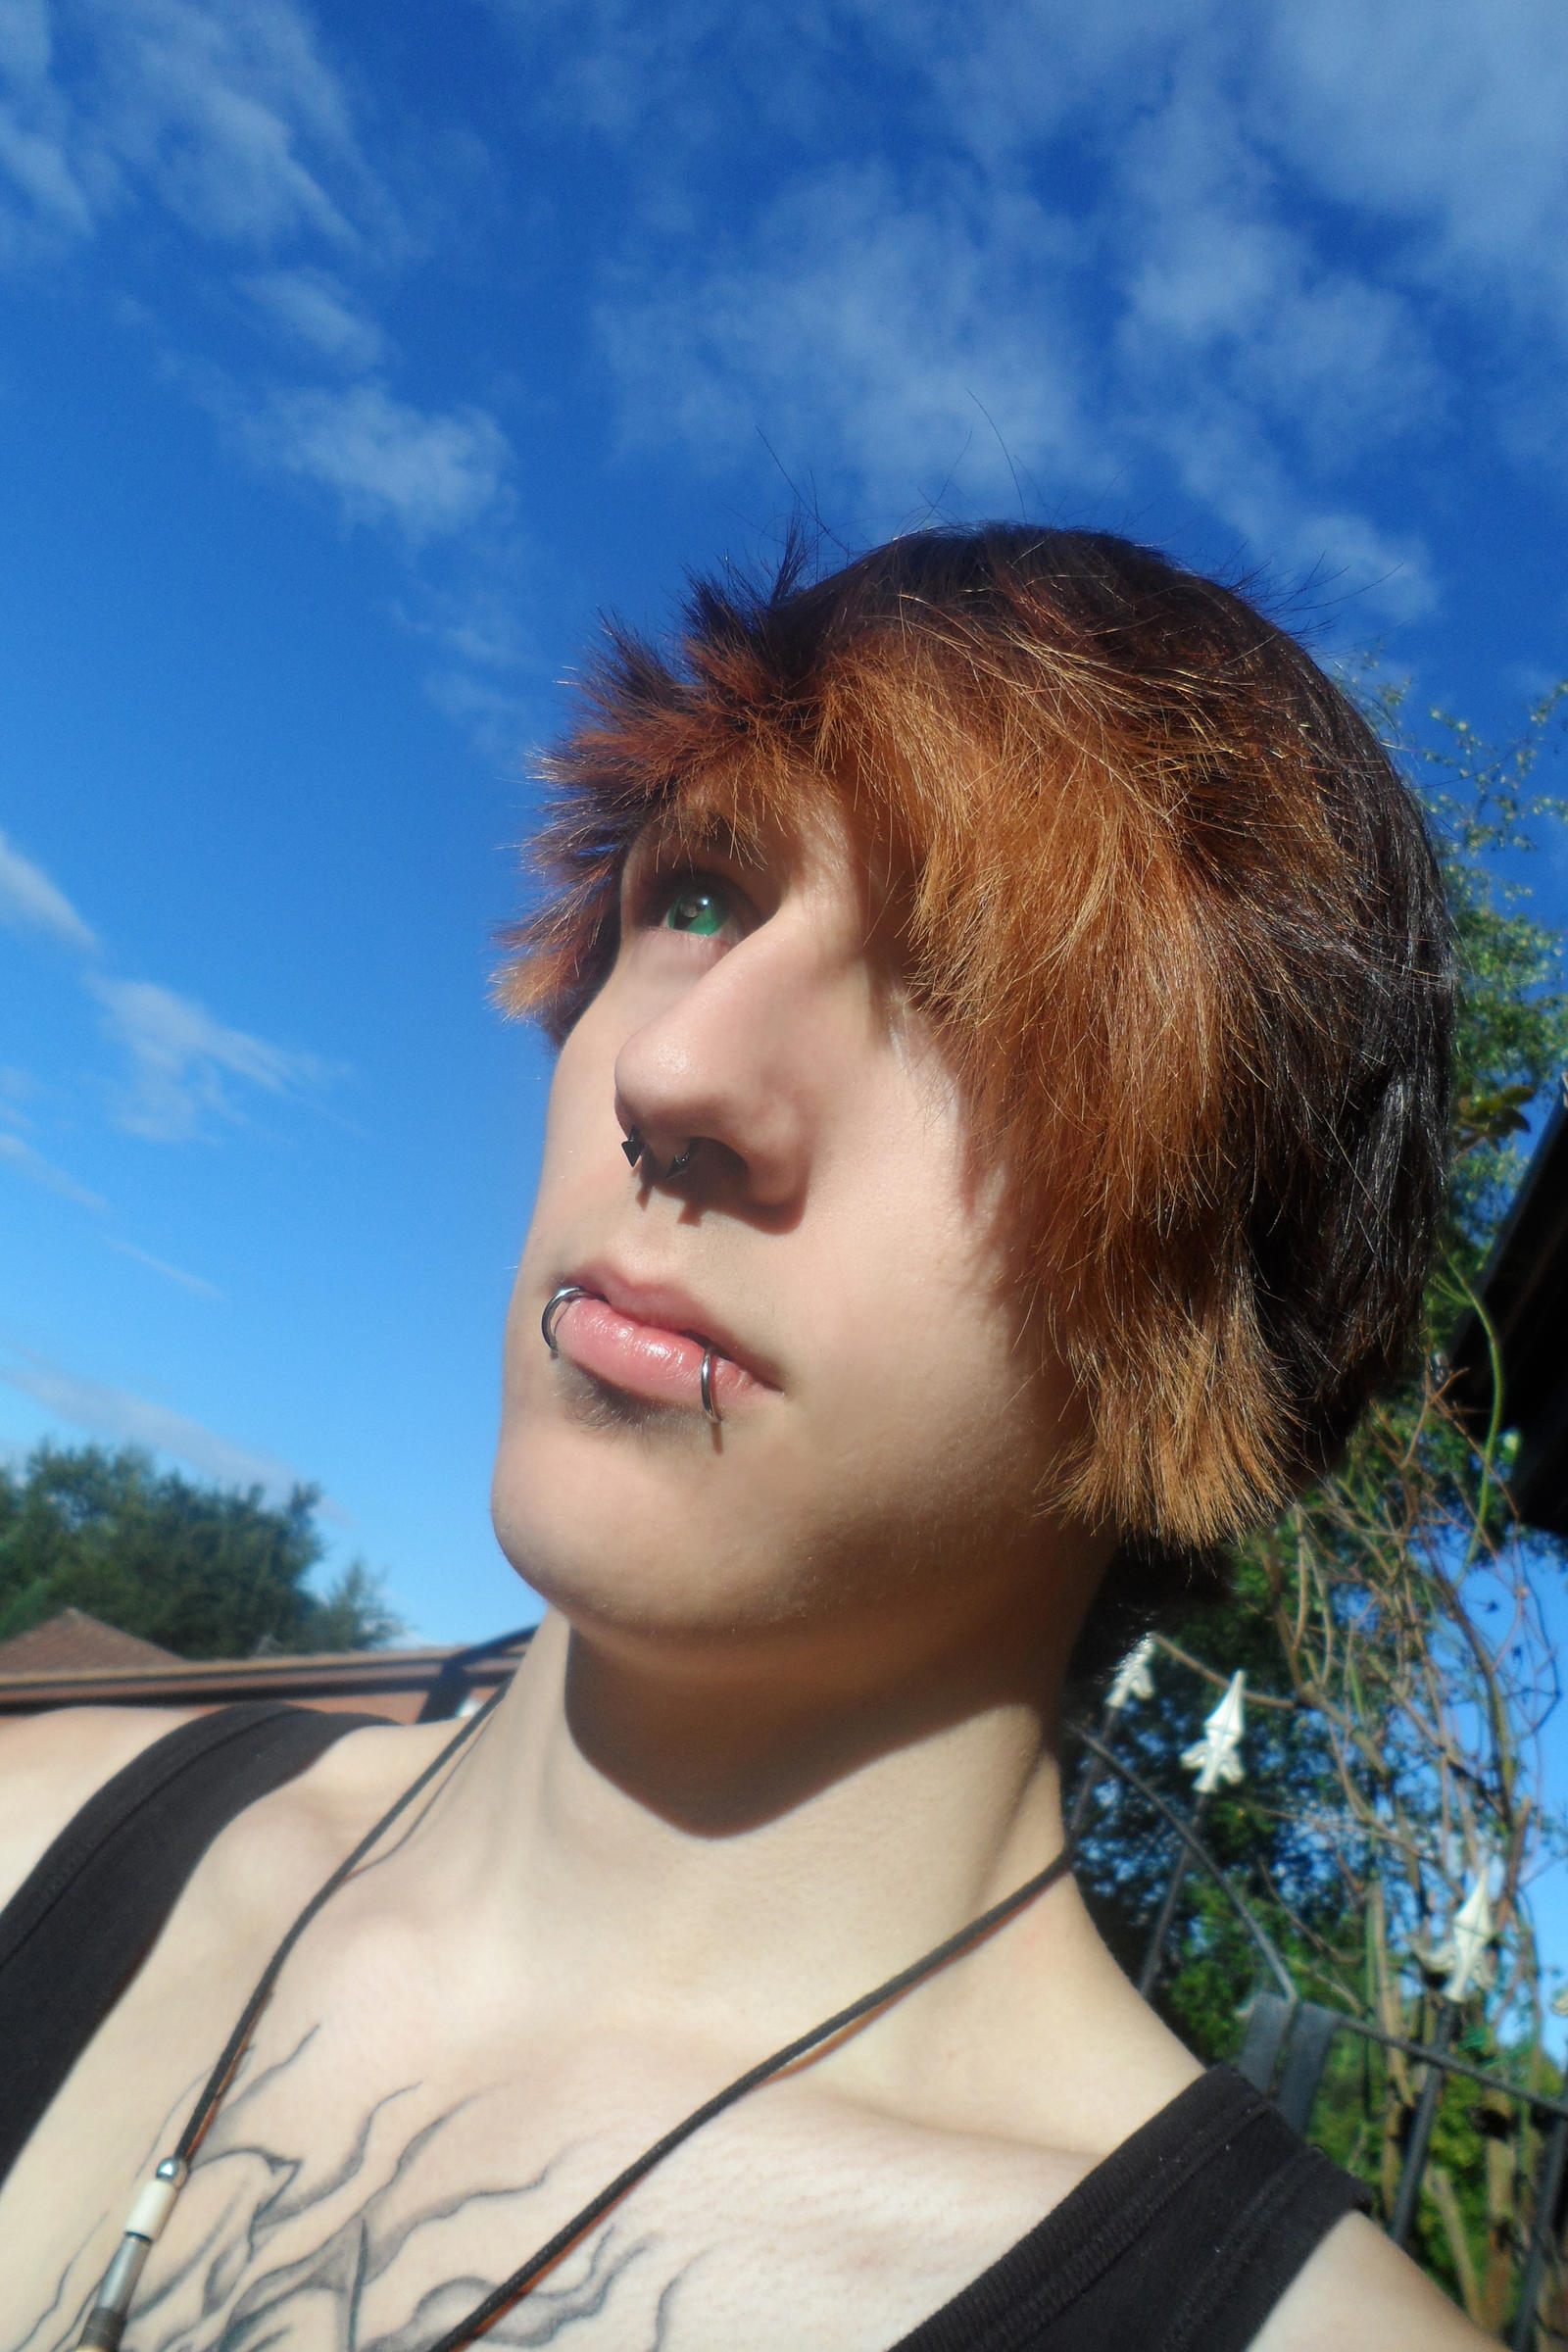 Reptilian Contact Lenses: Blue Skies by Crimson666Fox